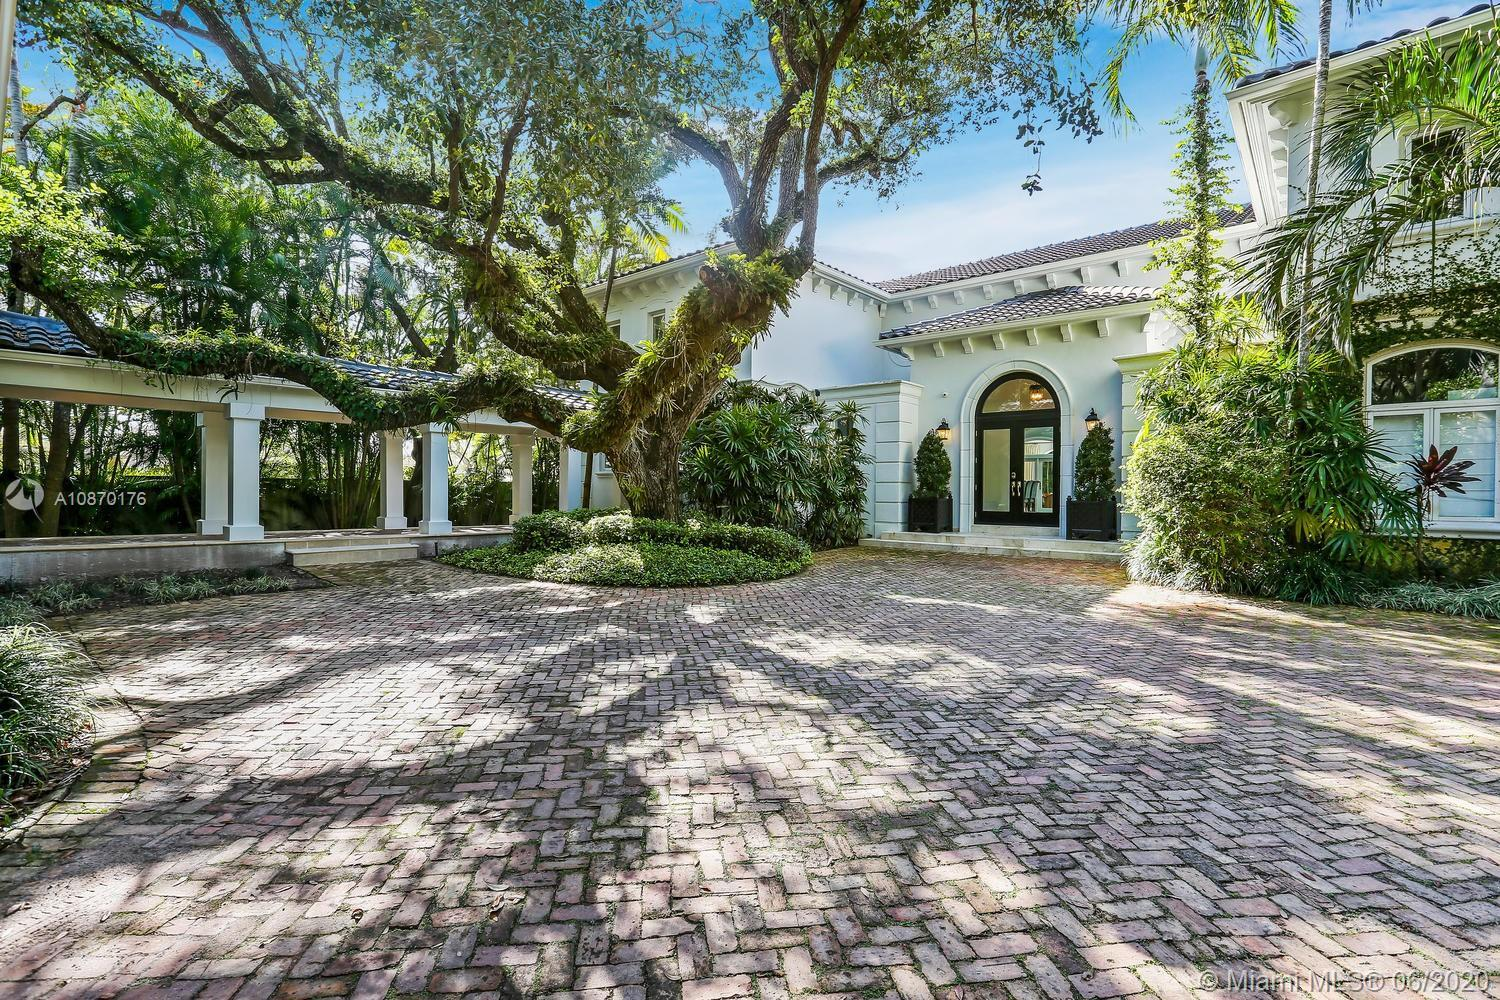 French contemporary, 100% redone, builder acre hidden in Gated Palms Estate on Cul-de-sac. Uniquely